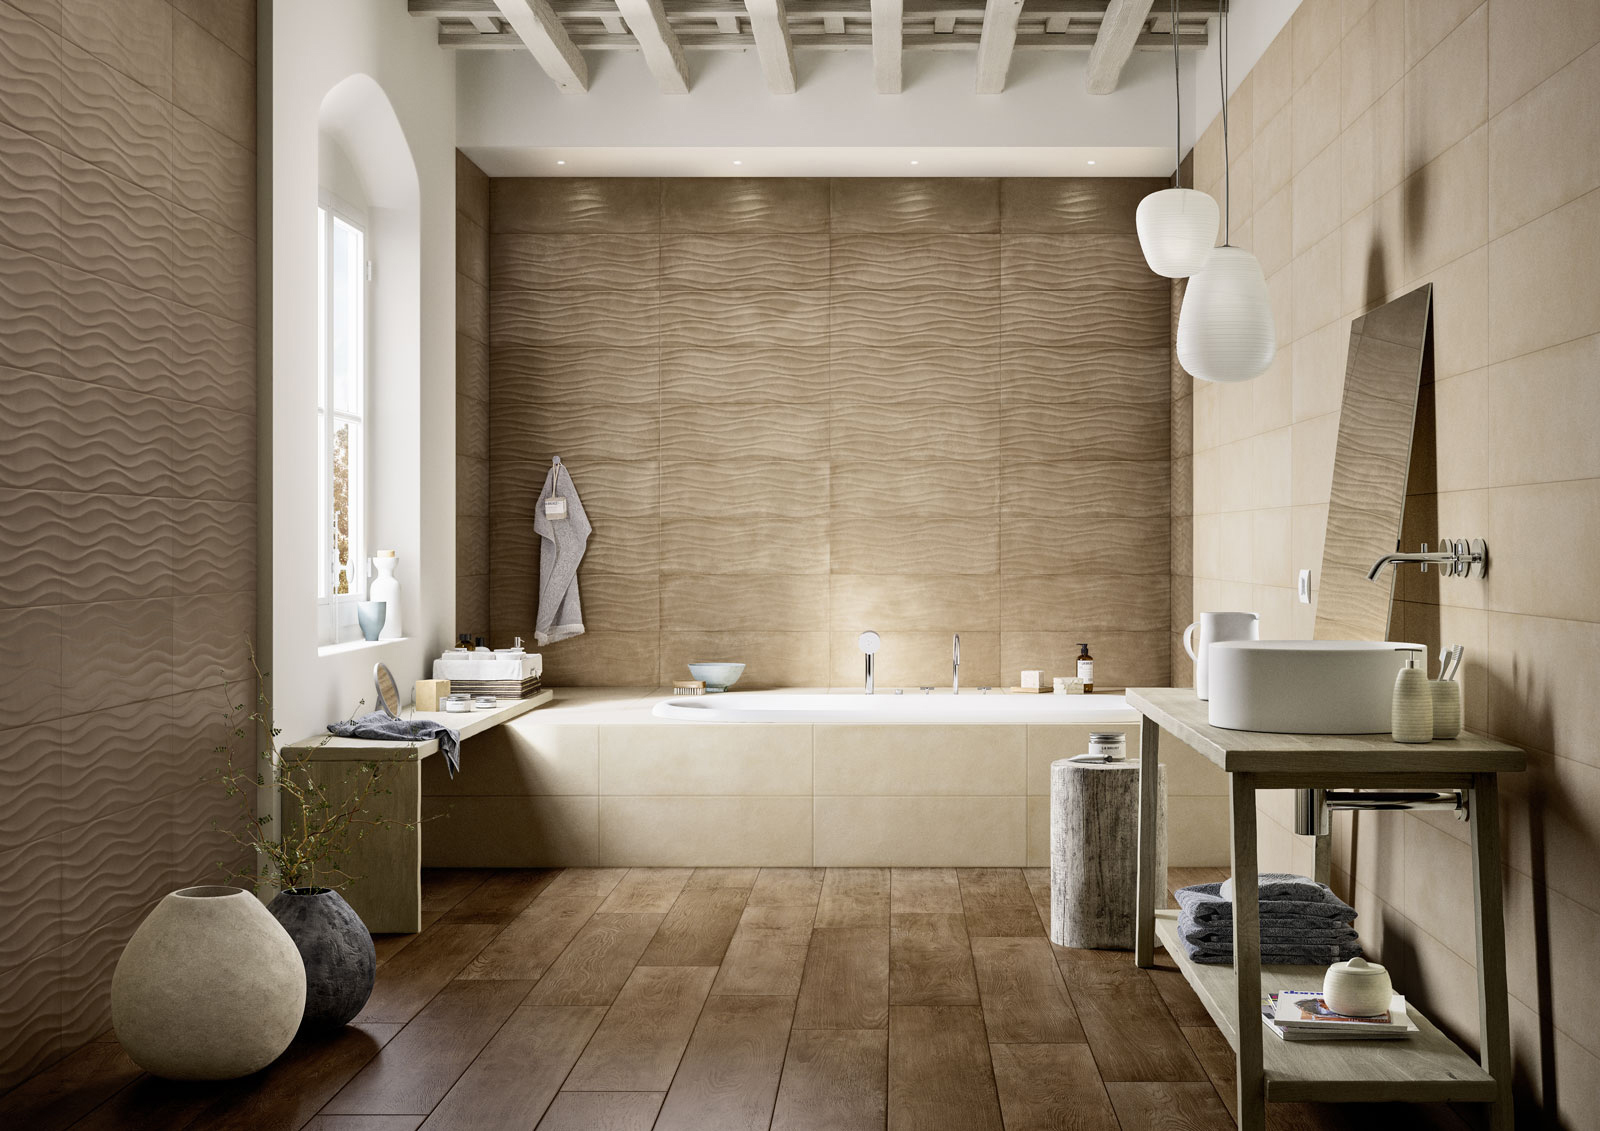 Clayline terracotta look ceramic wall covering marazzi clayline ceramic tiles marazzi7027 dailygadgetfo Images